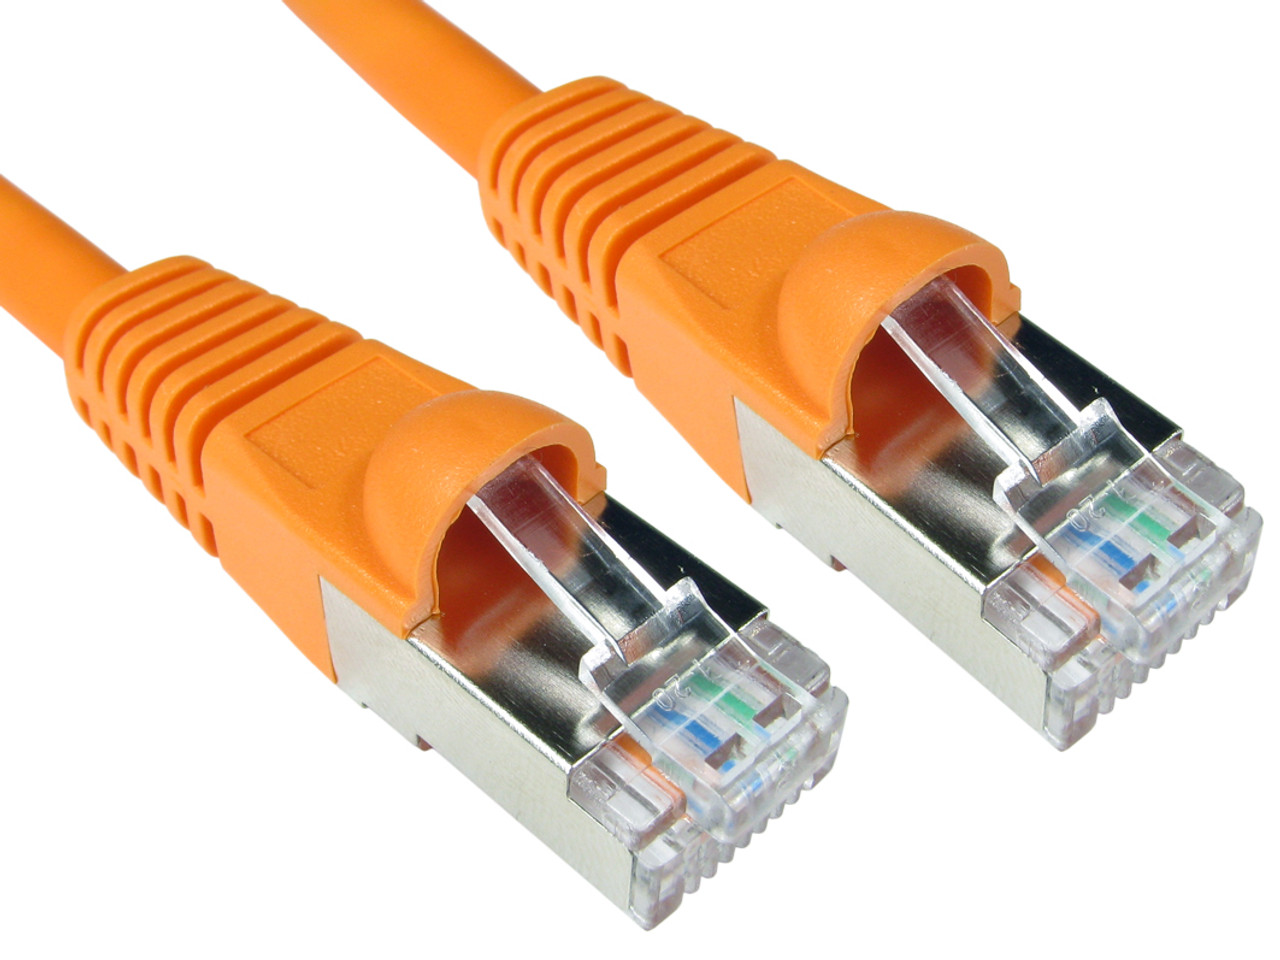 Product image for CAT6  PATCH CORD  5M ORANGE Network Cable 34374   CX Computer Superstore